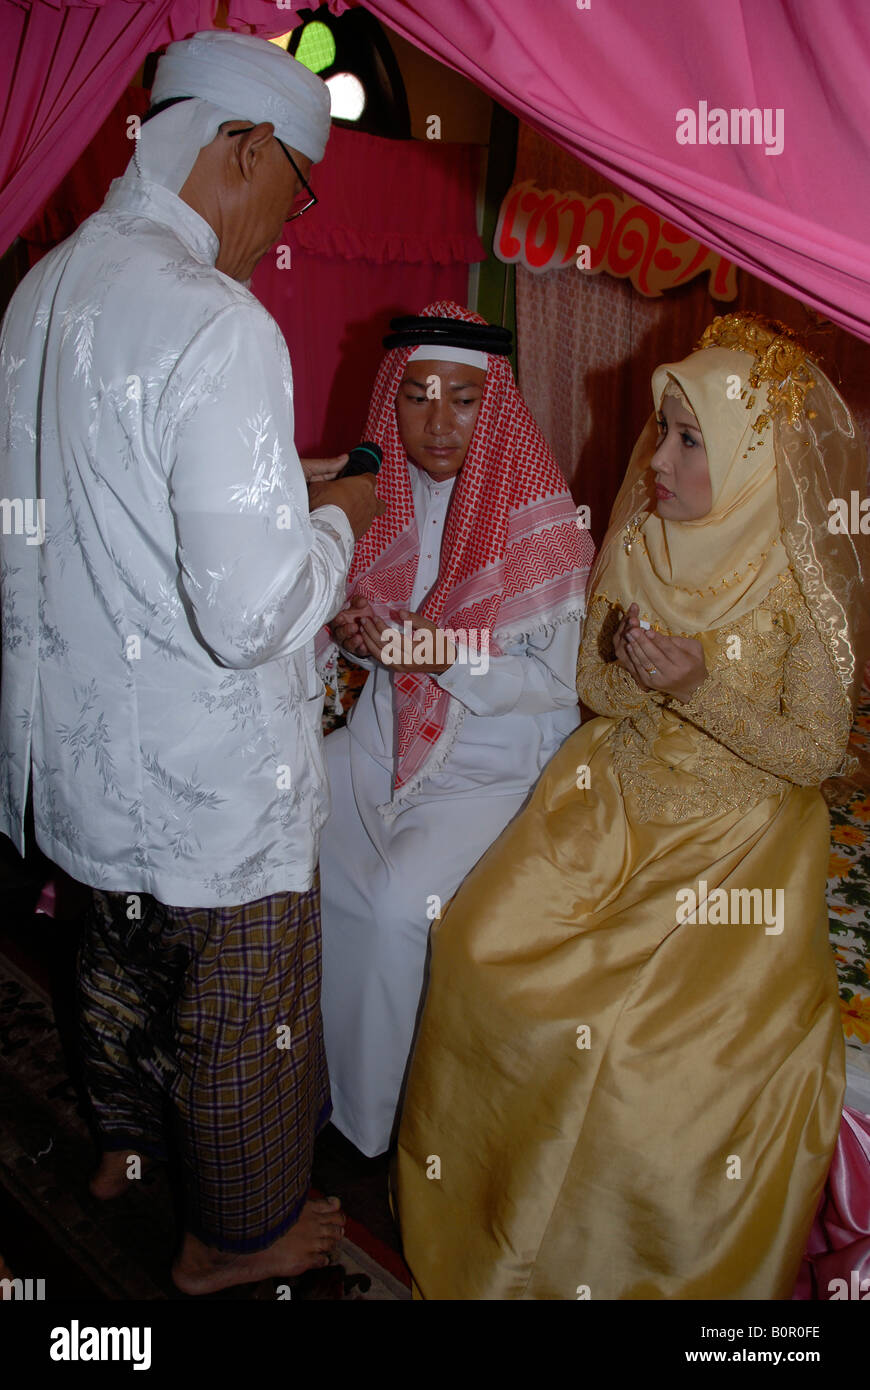 imam is blessing muslim bride and groom in their wedding day - Stock Image